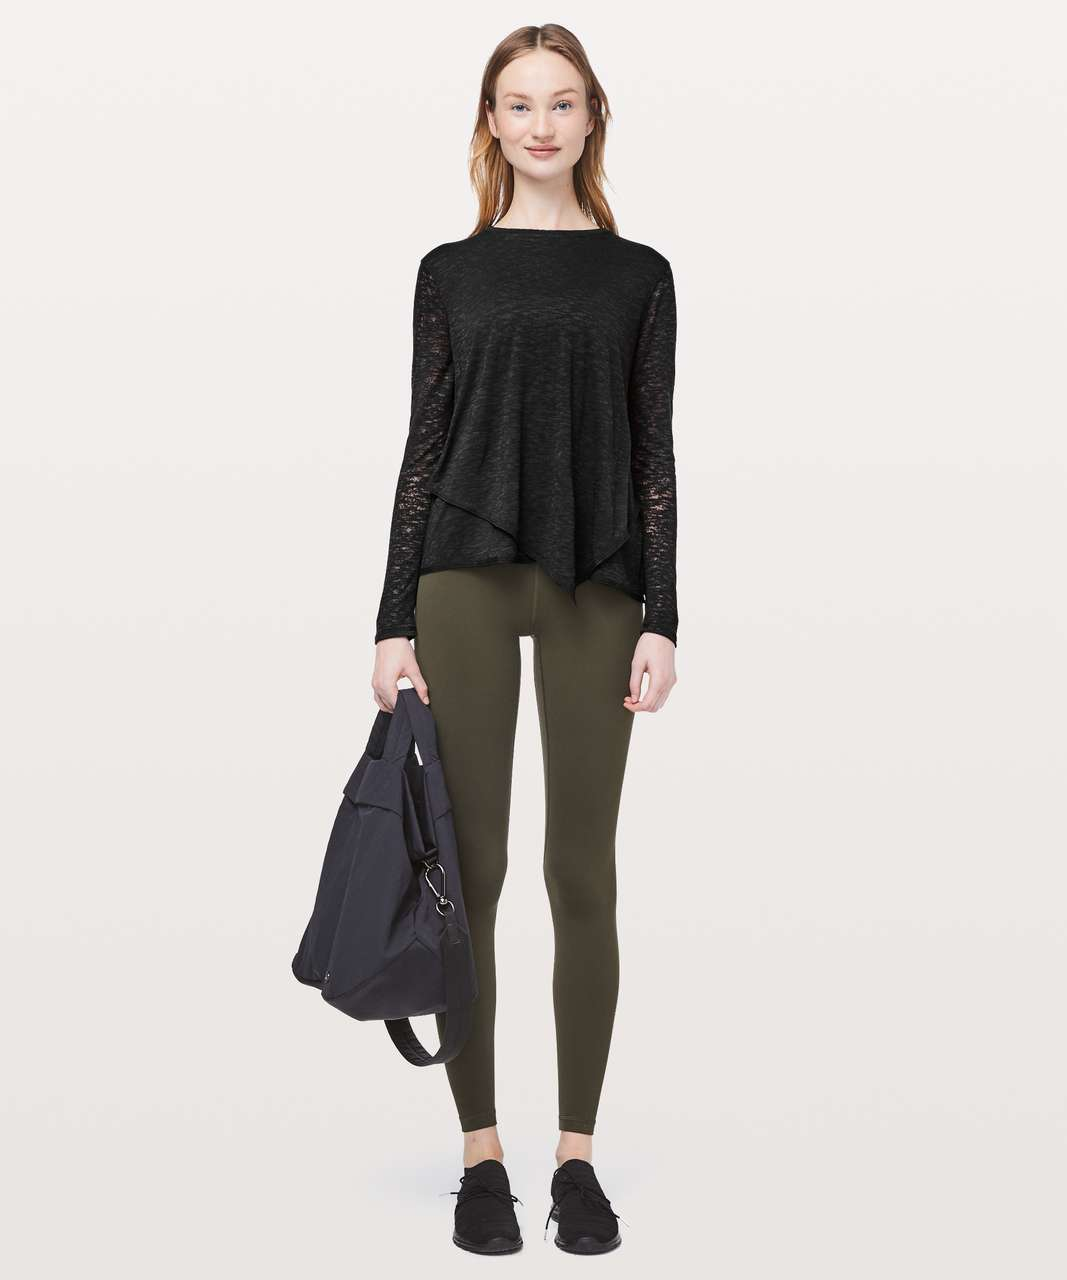 Lululemon Sweetest Day Long Sleeve *Burnout - Black